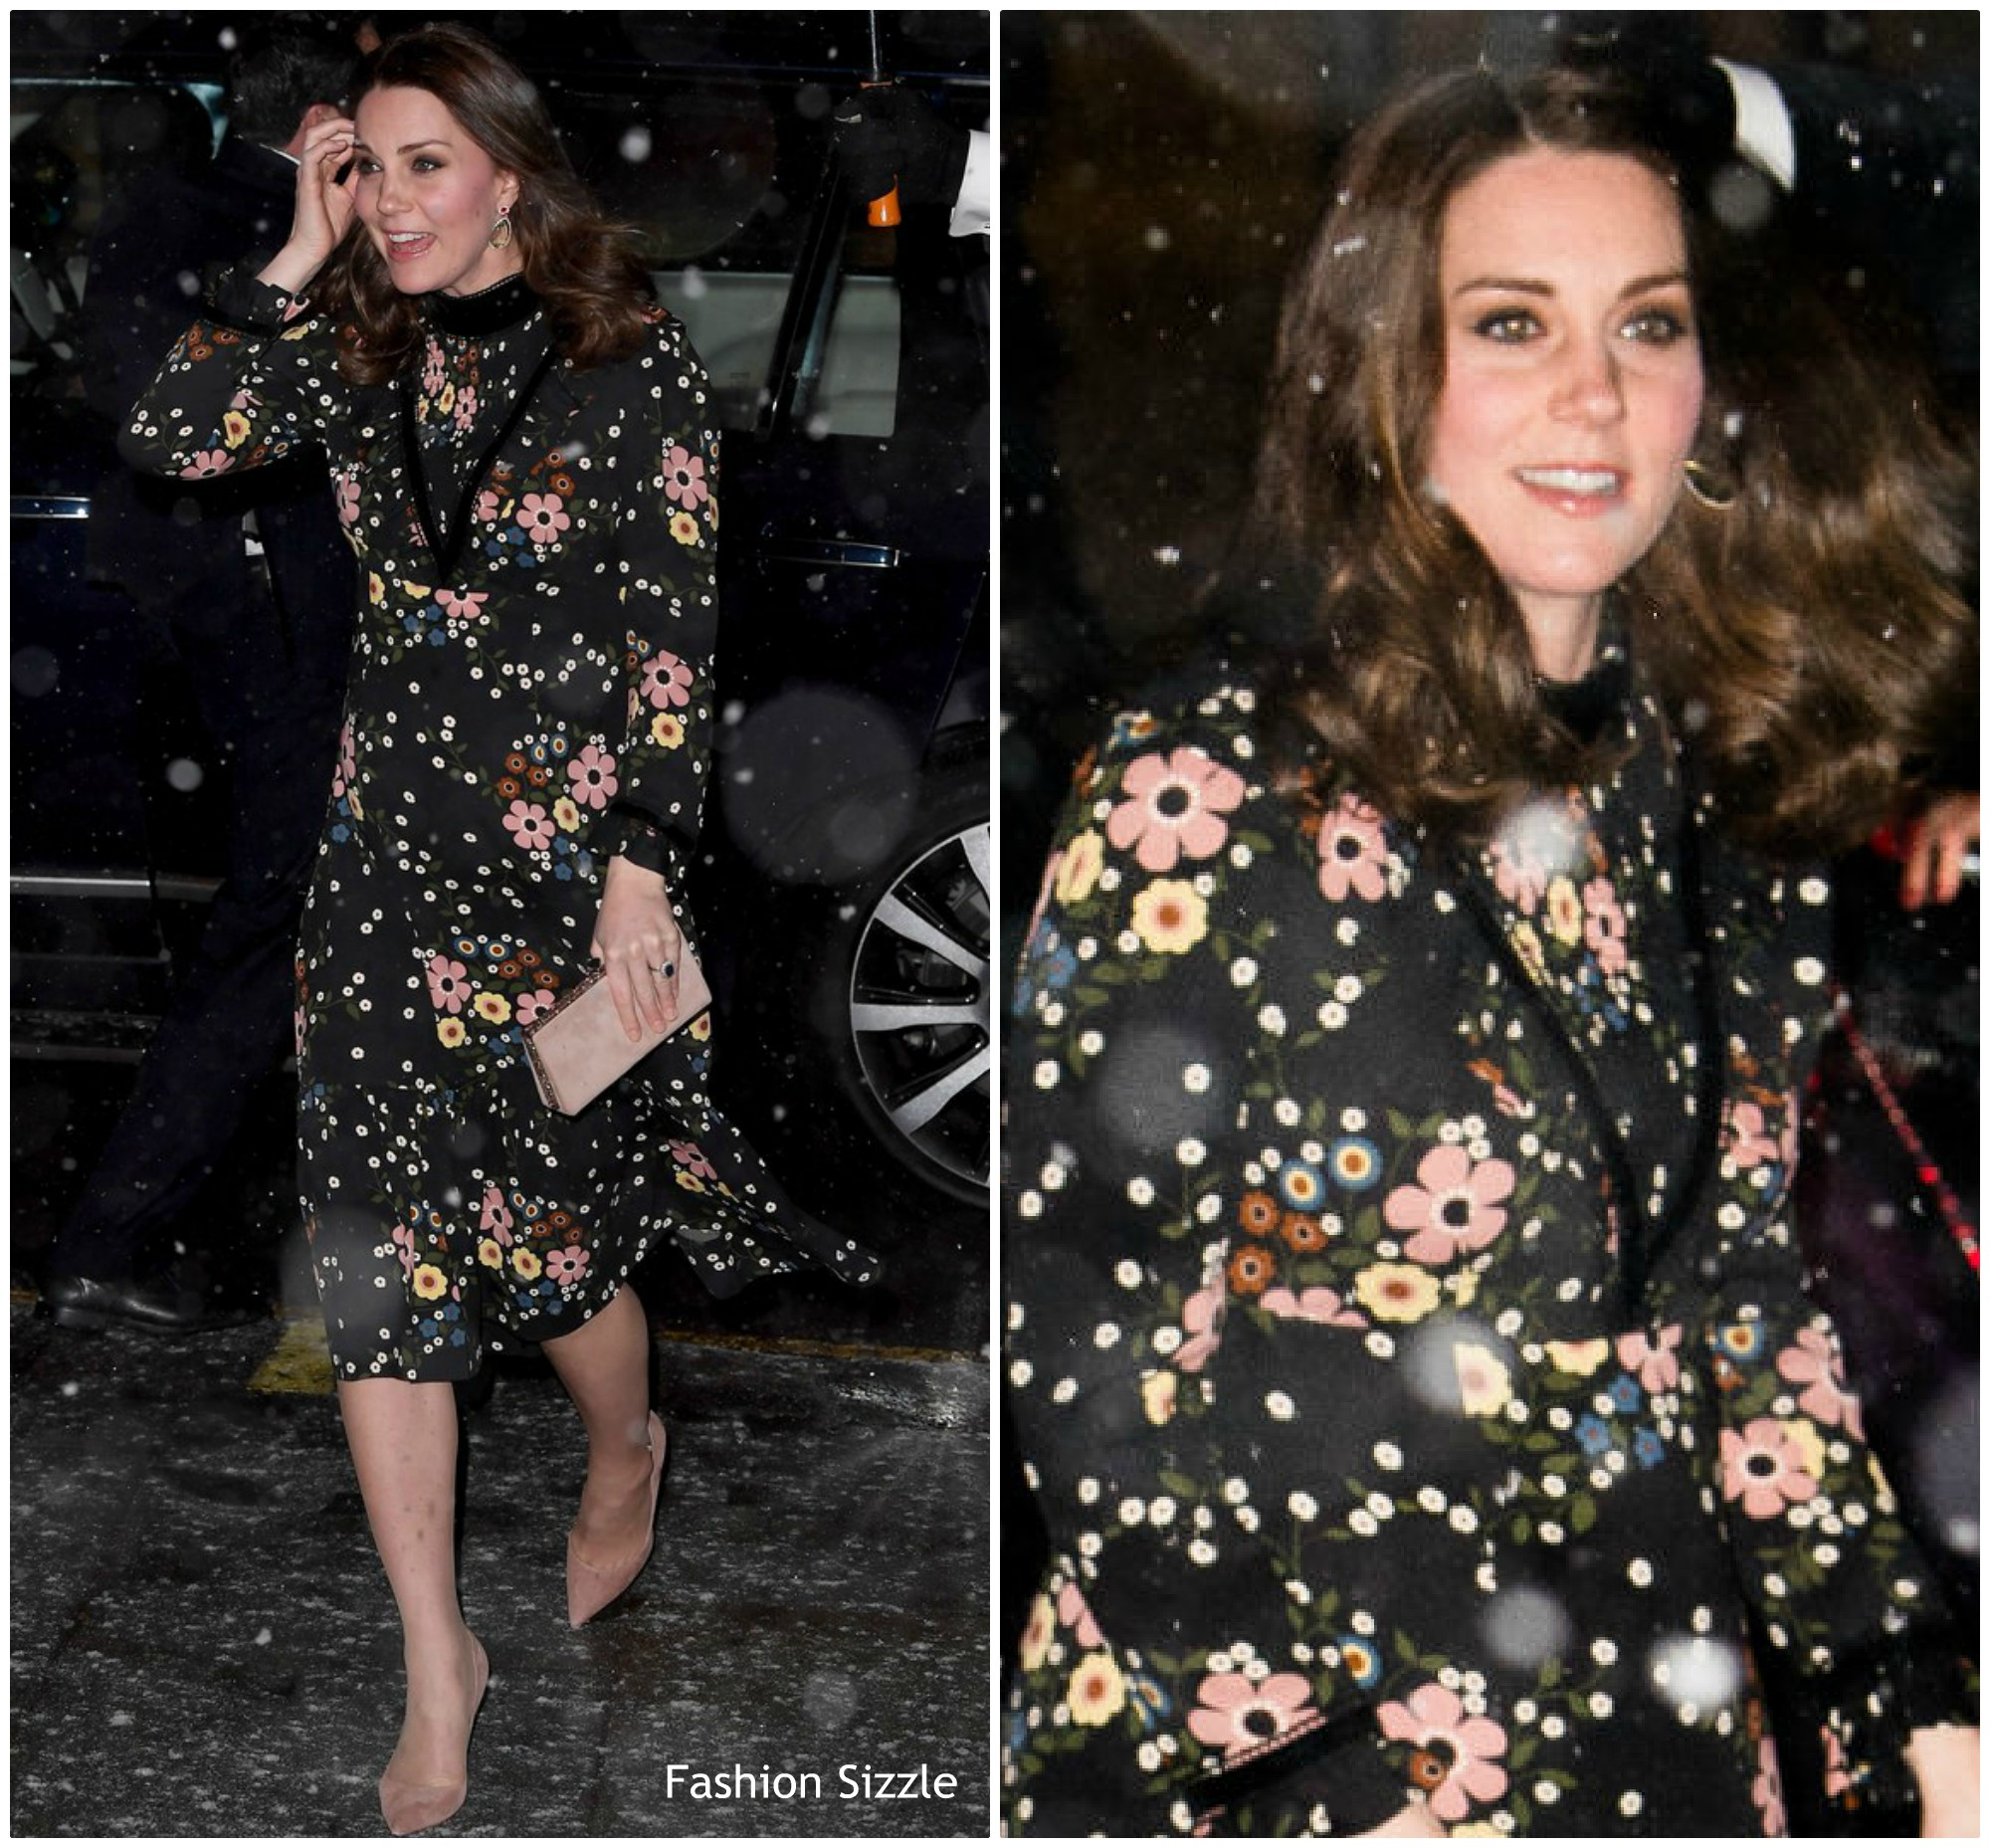 kate-middleton-in-orla-kiely-national-portrait-gallery-in-london